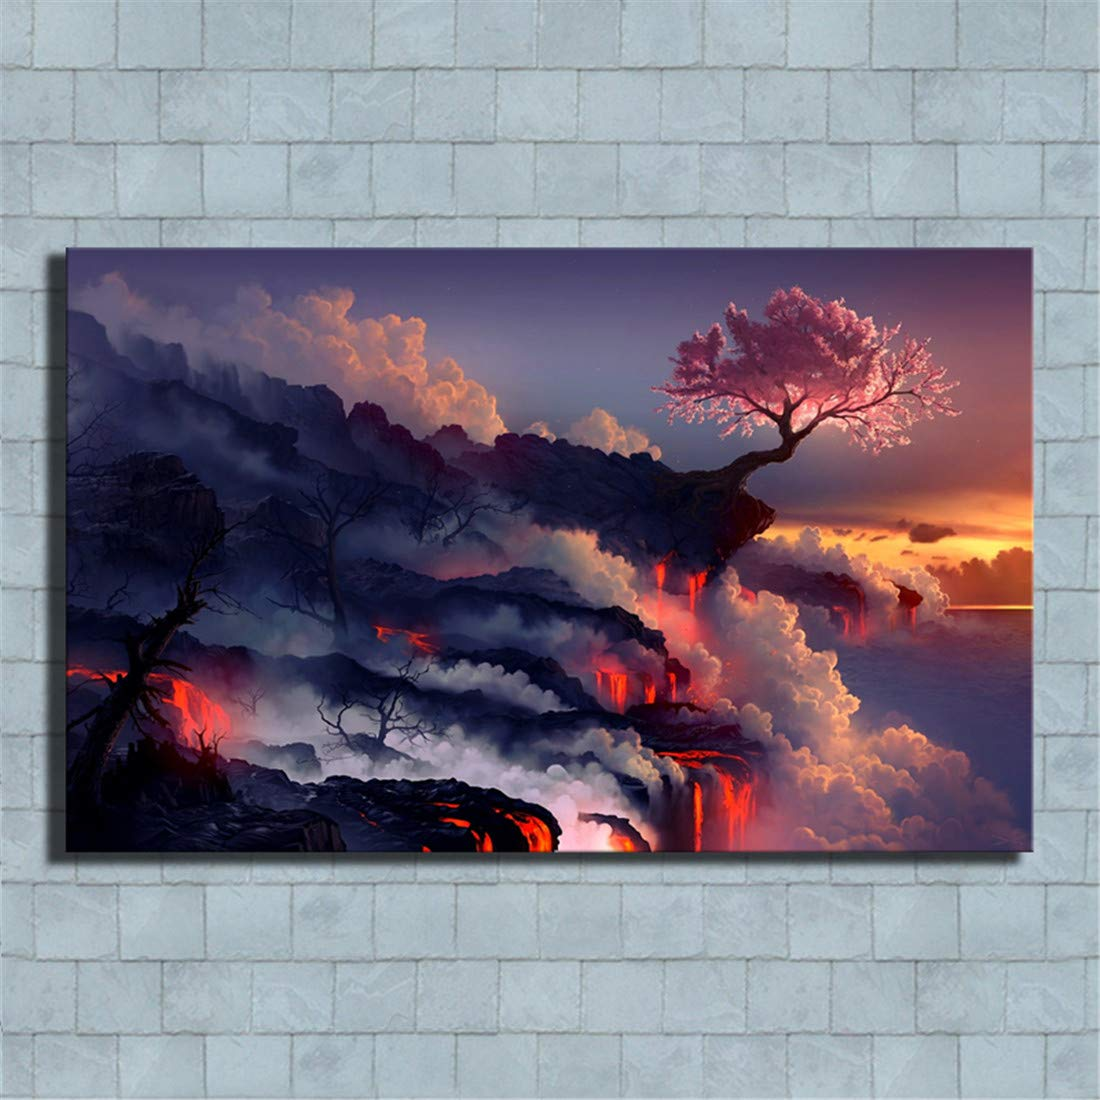 Natvva 1 Piece Canvas Painting Fantasy Art Scorched Earth Lava Landscape Cherry Blossom Sunset Life Blossom Hd Picture Print Wall Decor